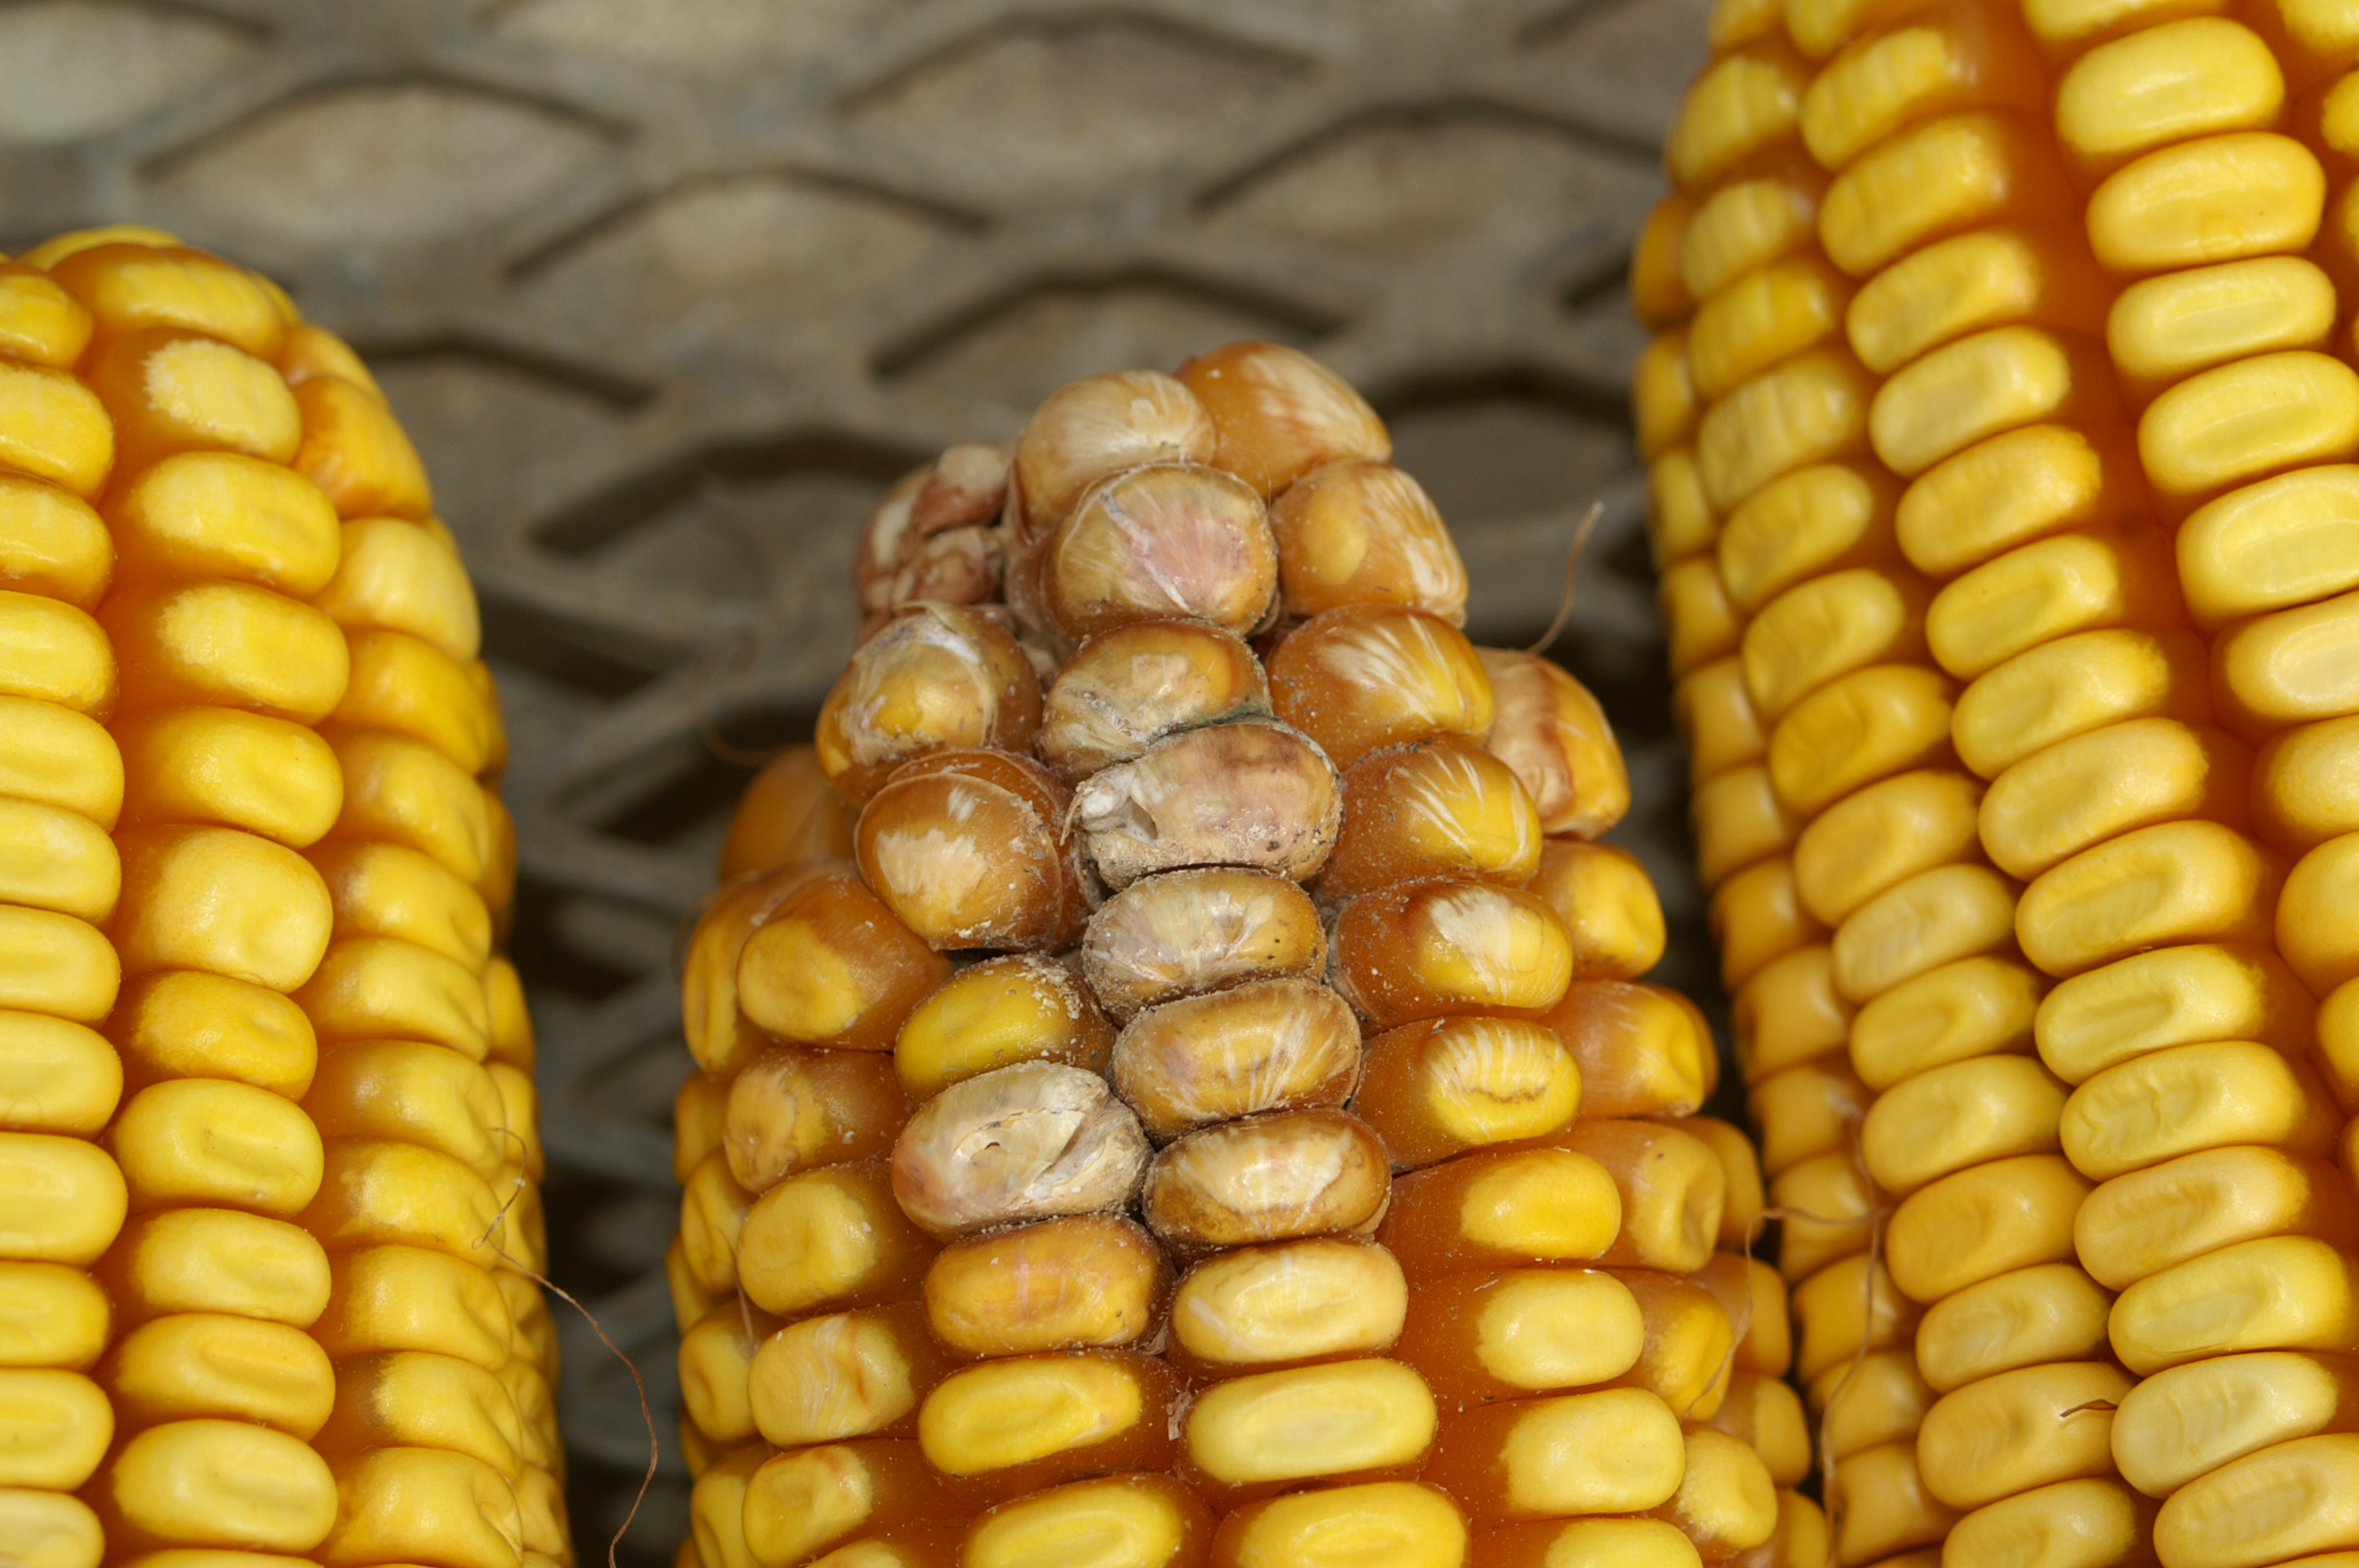 Starburst pattern on kernels indicative of Fusarium ear rot.